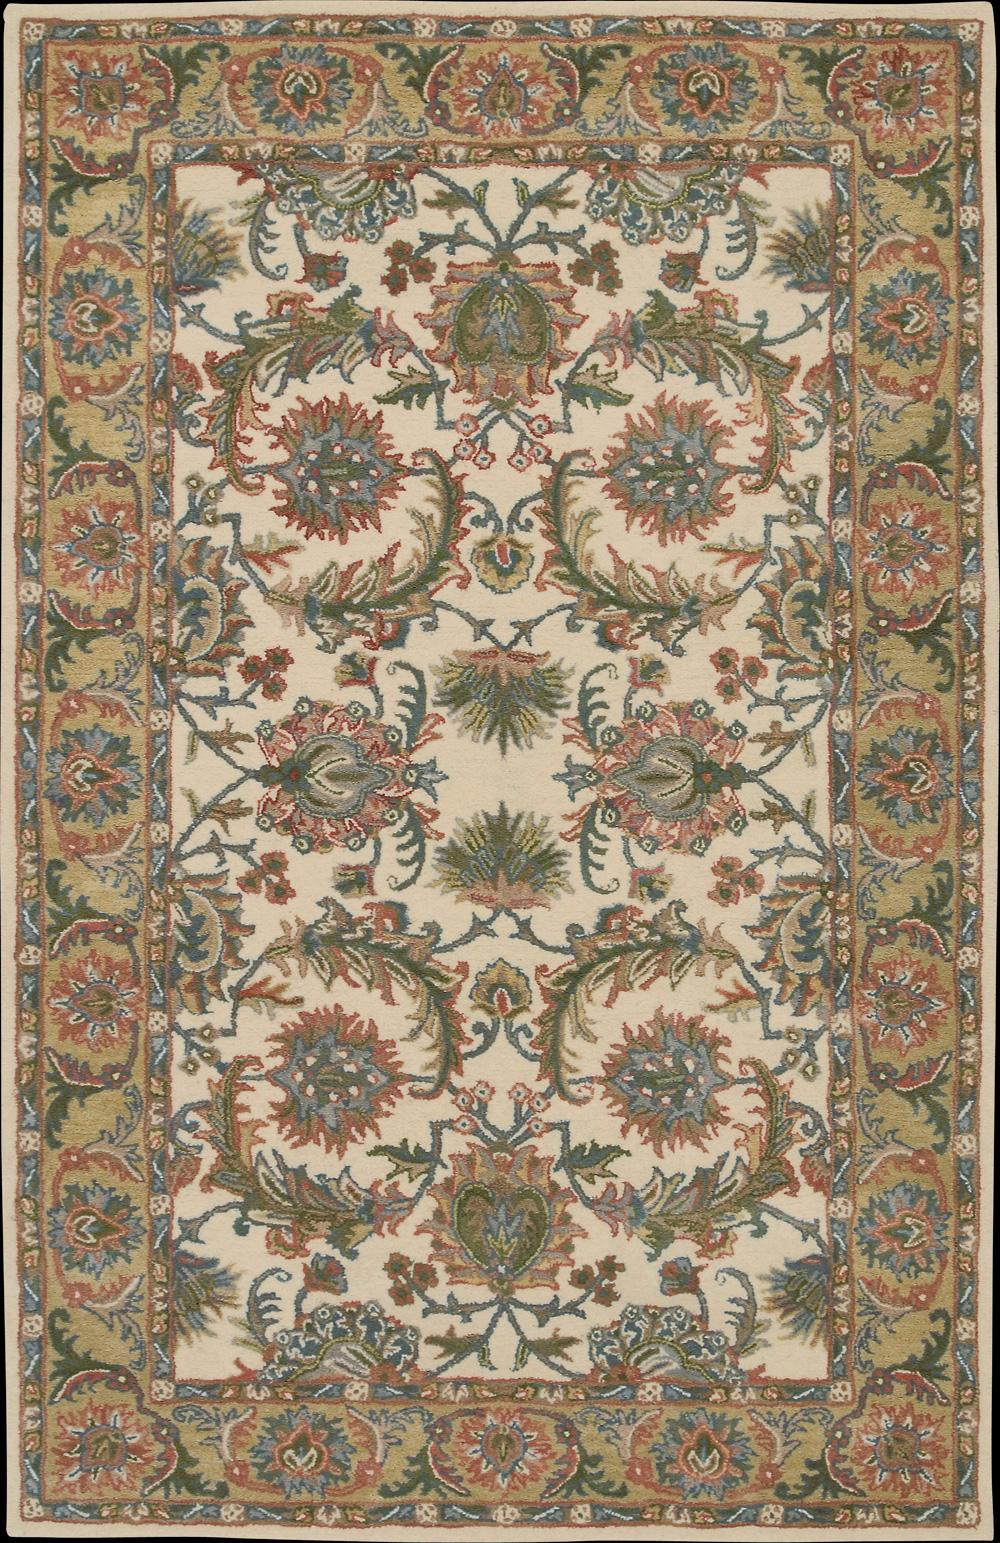 "Nourison India House Area Rug 2'6"" x 4' - Item Number: 33811"